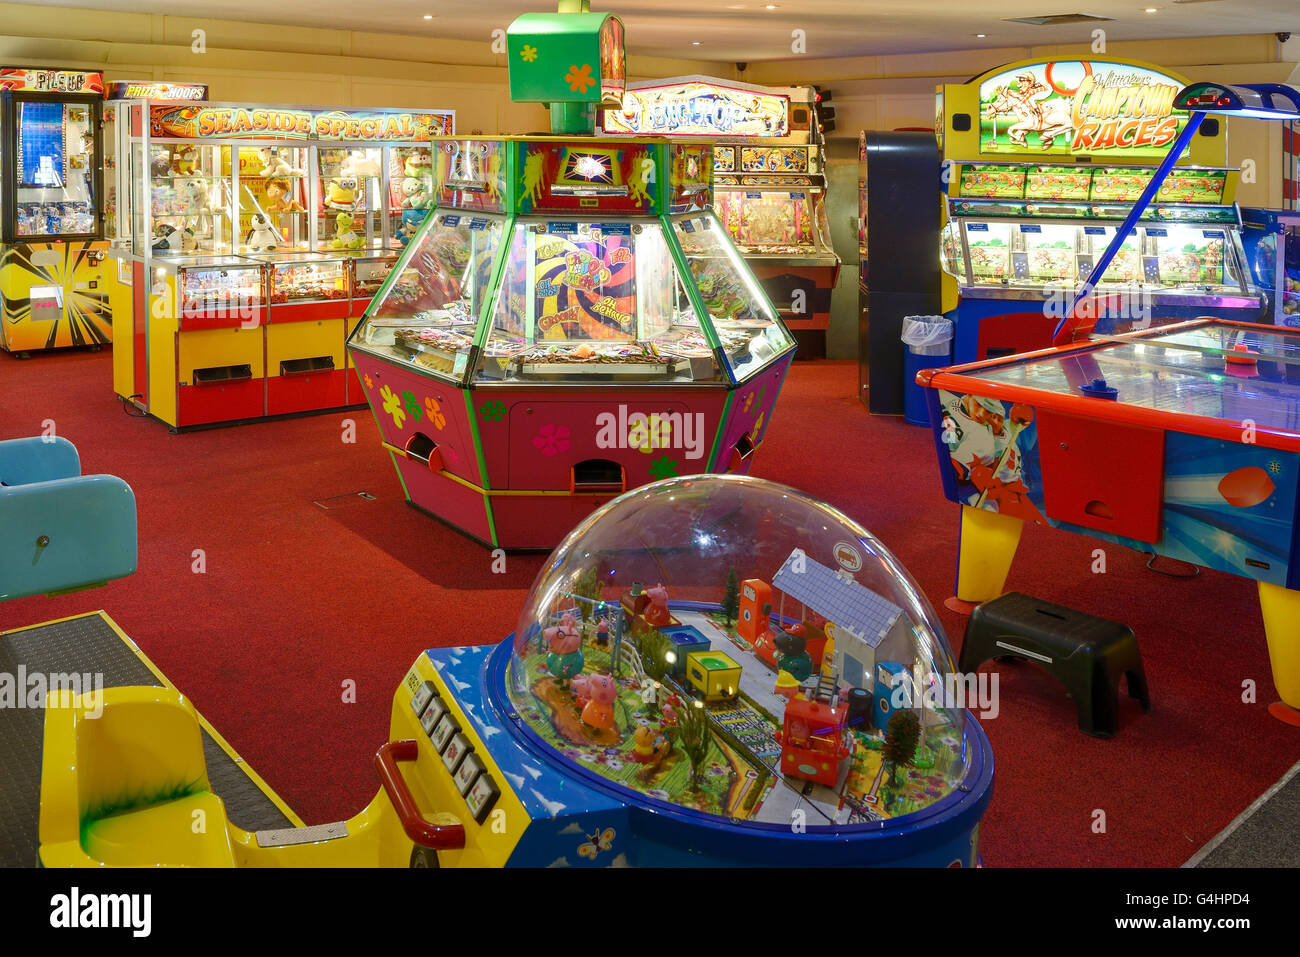 Amusement arcade games - Stock Image